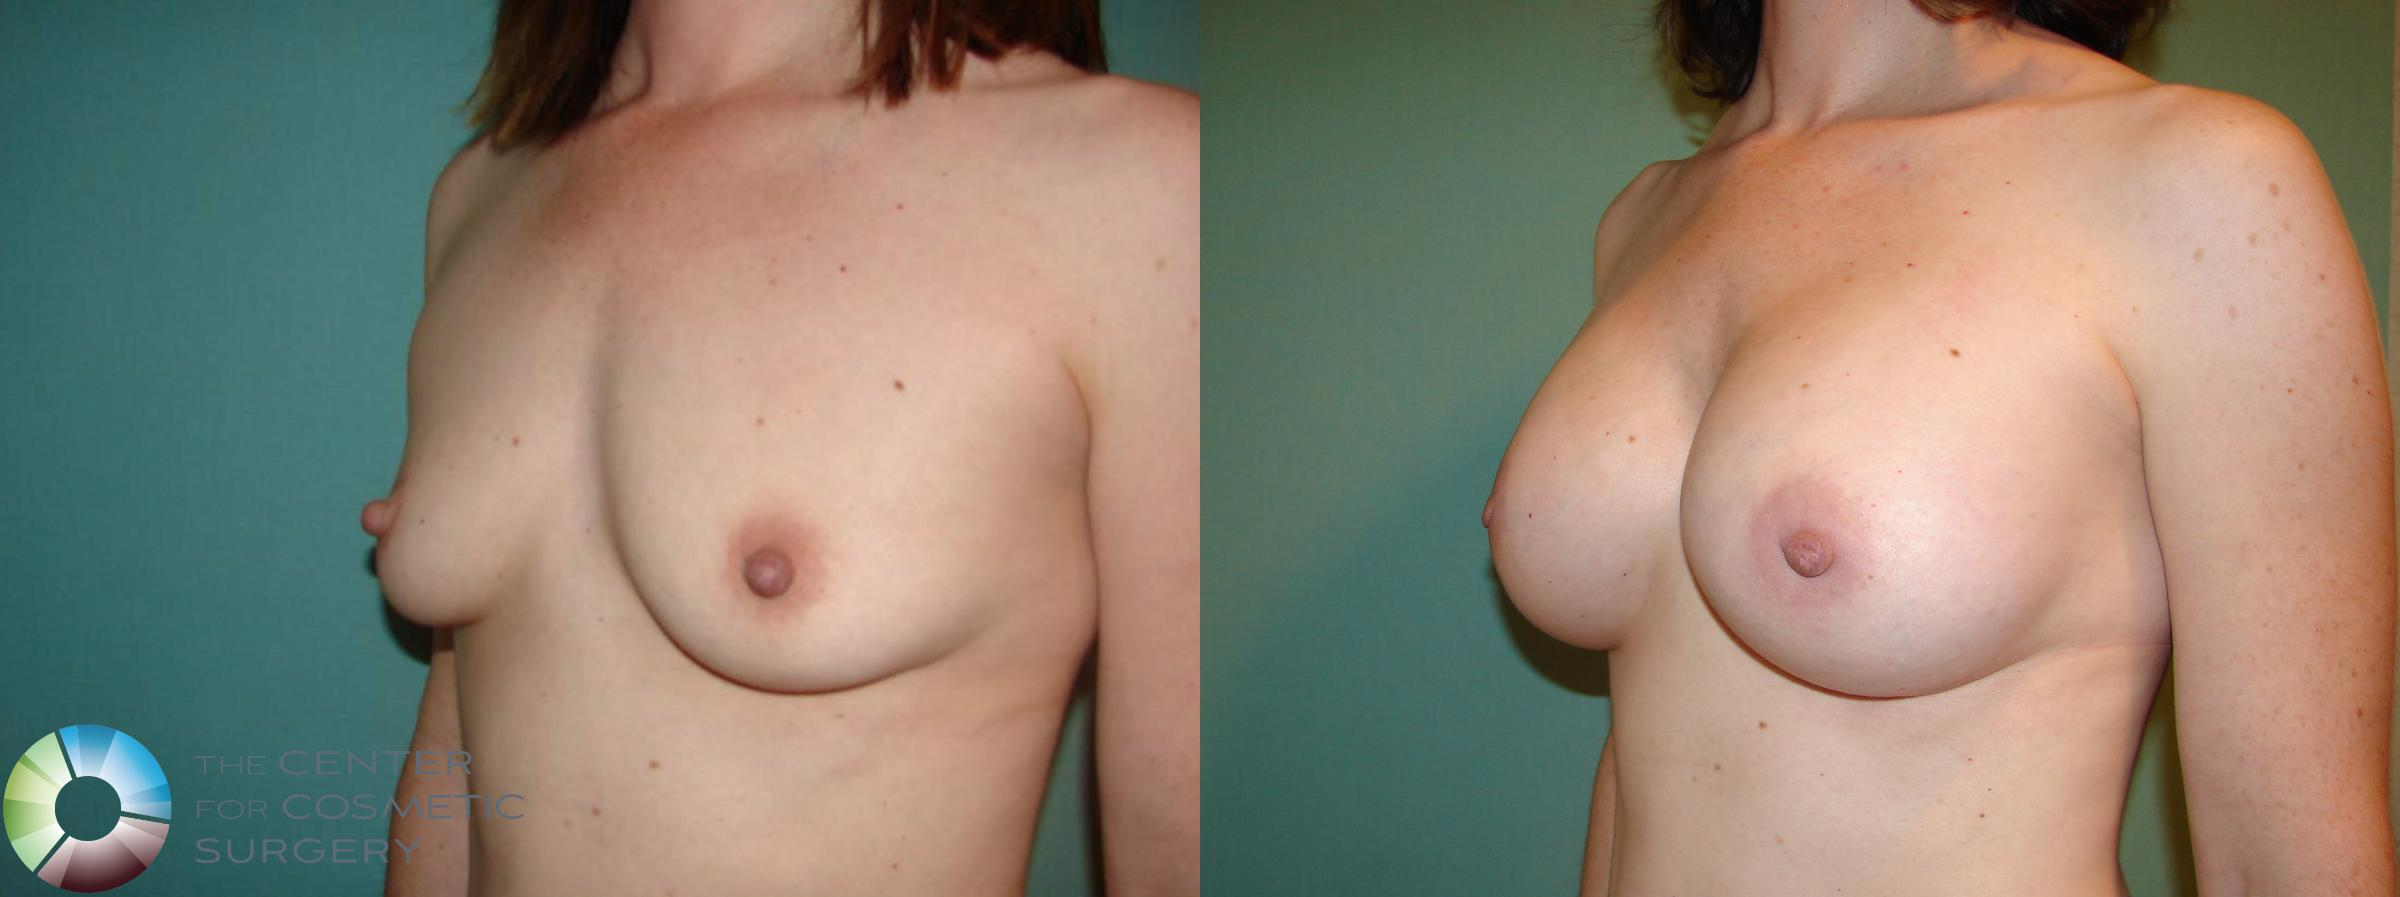 Breast Augmentation Case 529 Before & After View #5 | Golden, CO | The Center for Cosmetic Surgery